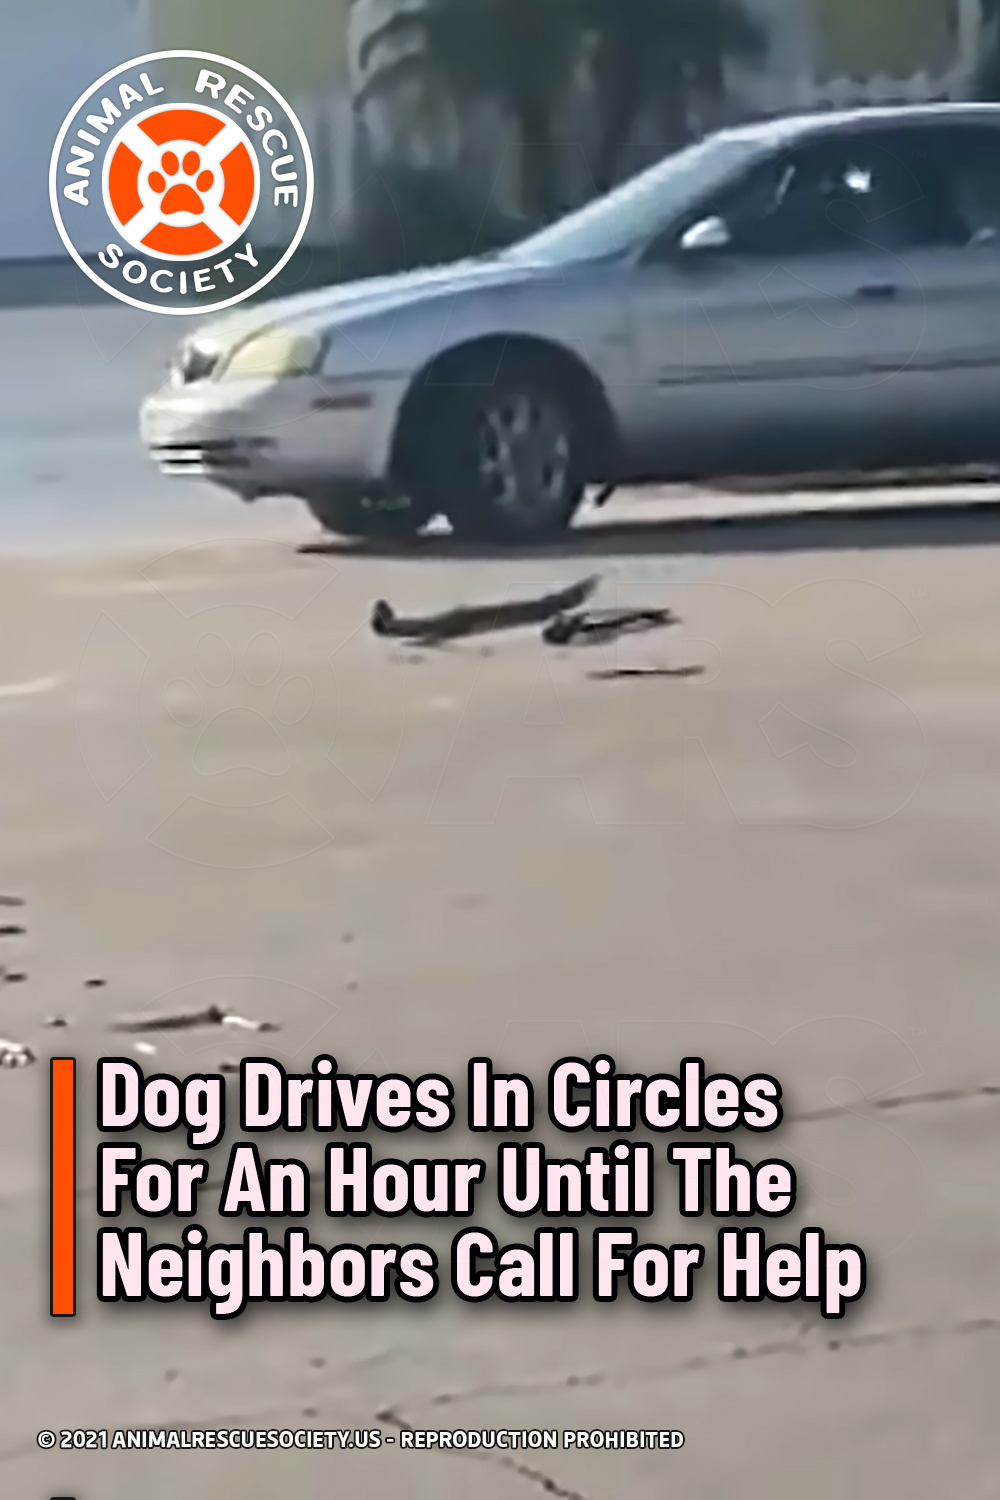 Dog Drives In Circles For An Hour Until The Neighbors Call For Help